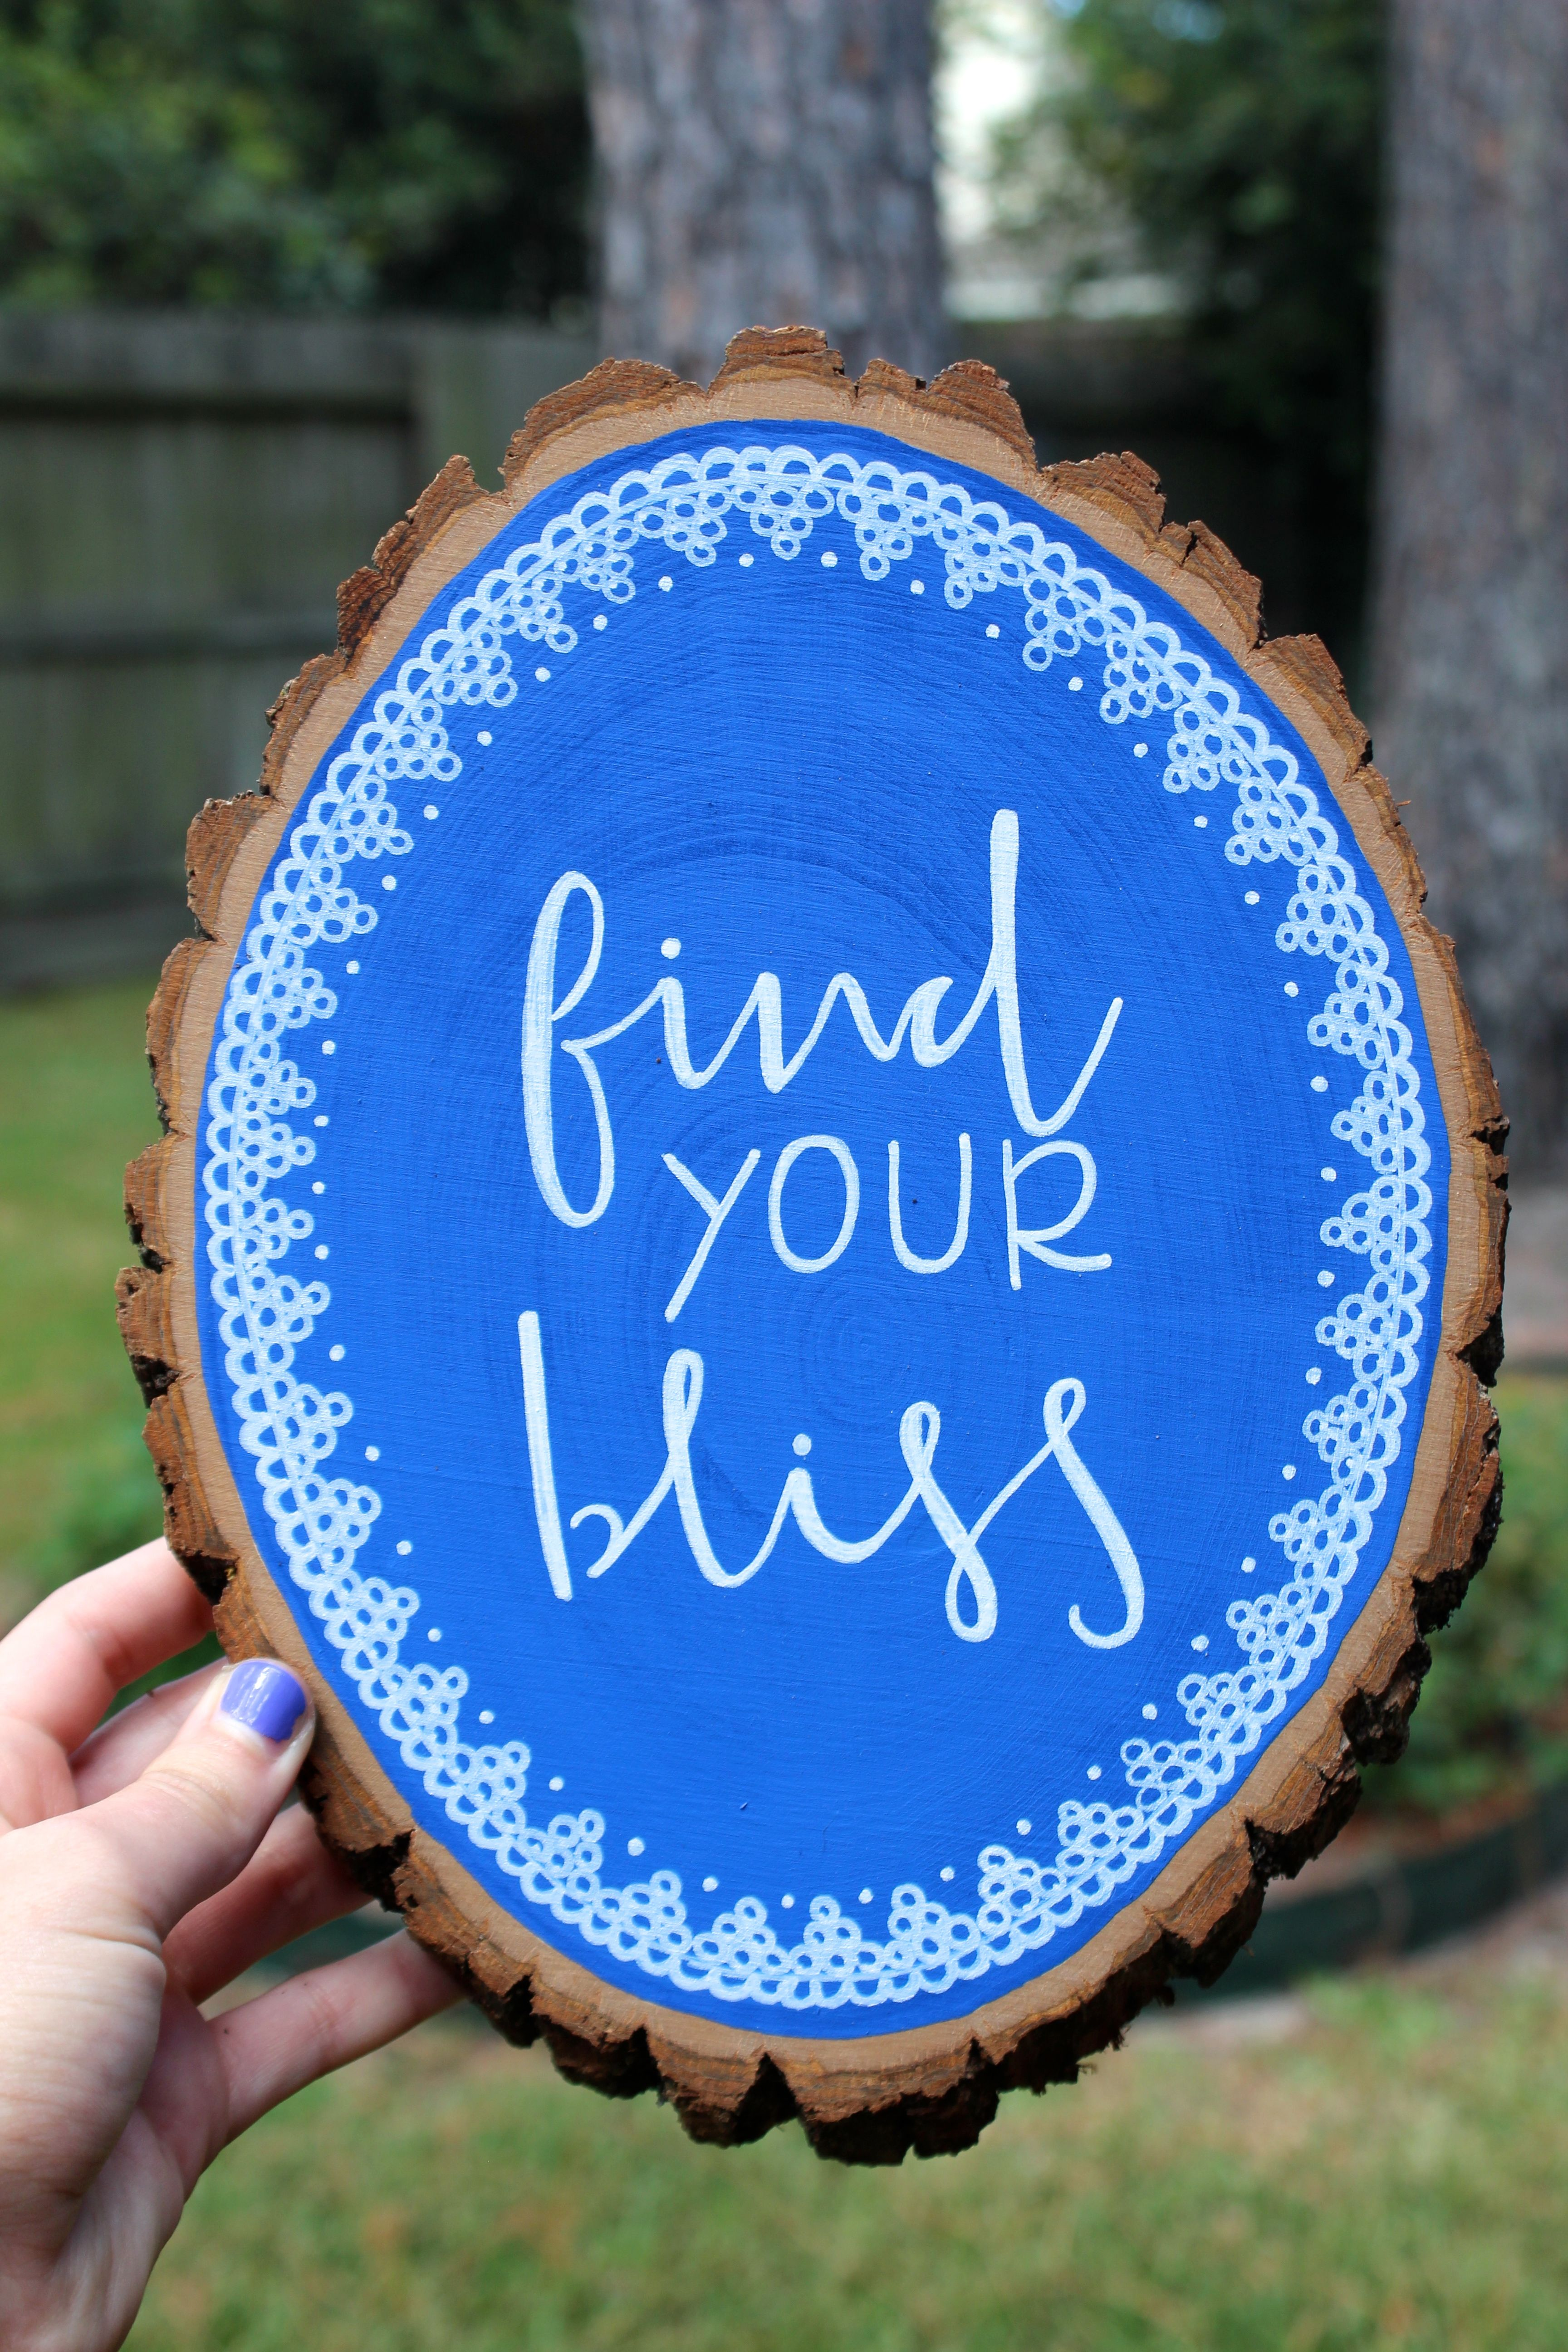 Find your bliss wood canvas quote canvas canvas wood slice